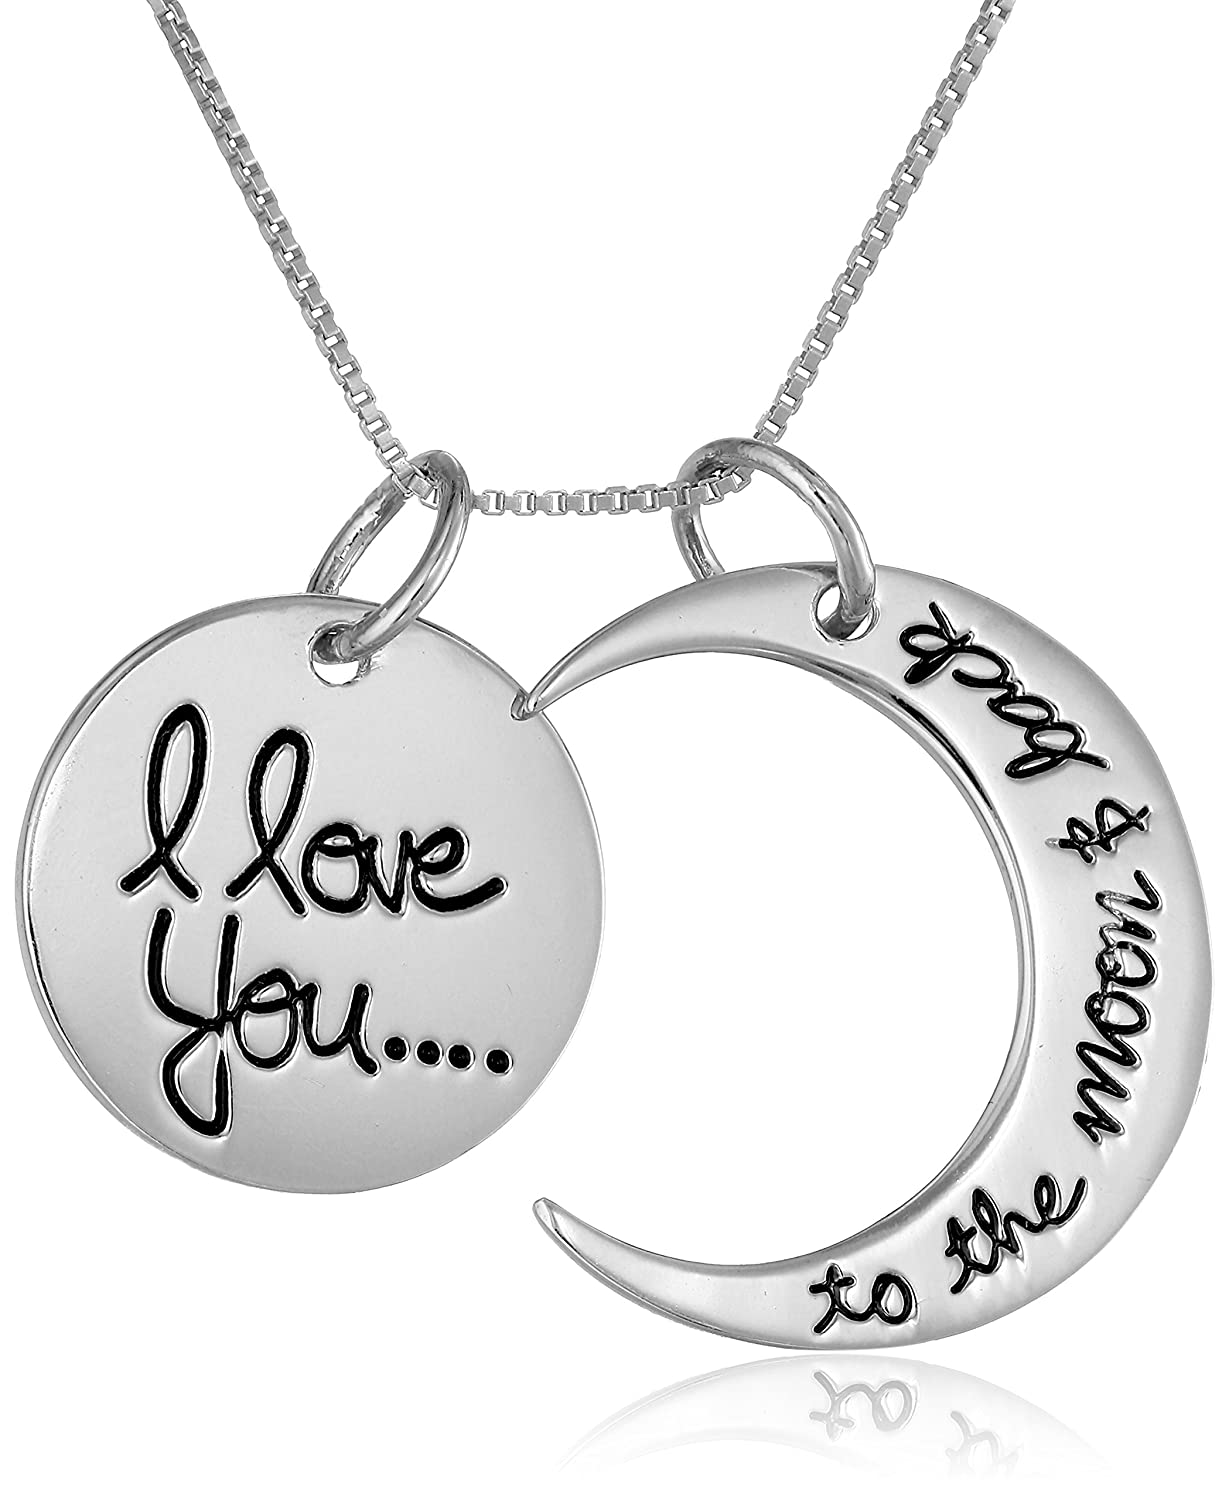 I love you to the moon and back engraved necklace silver